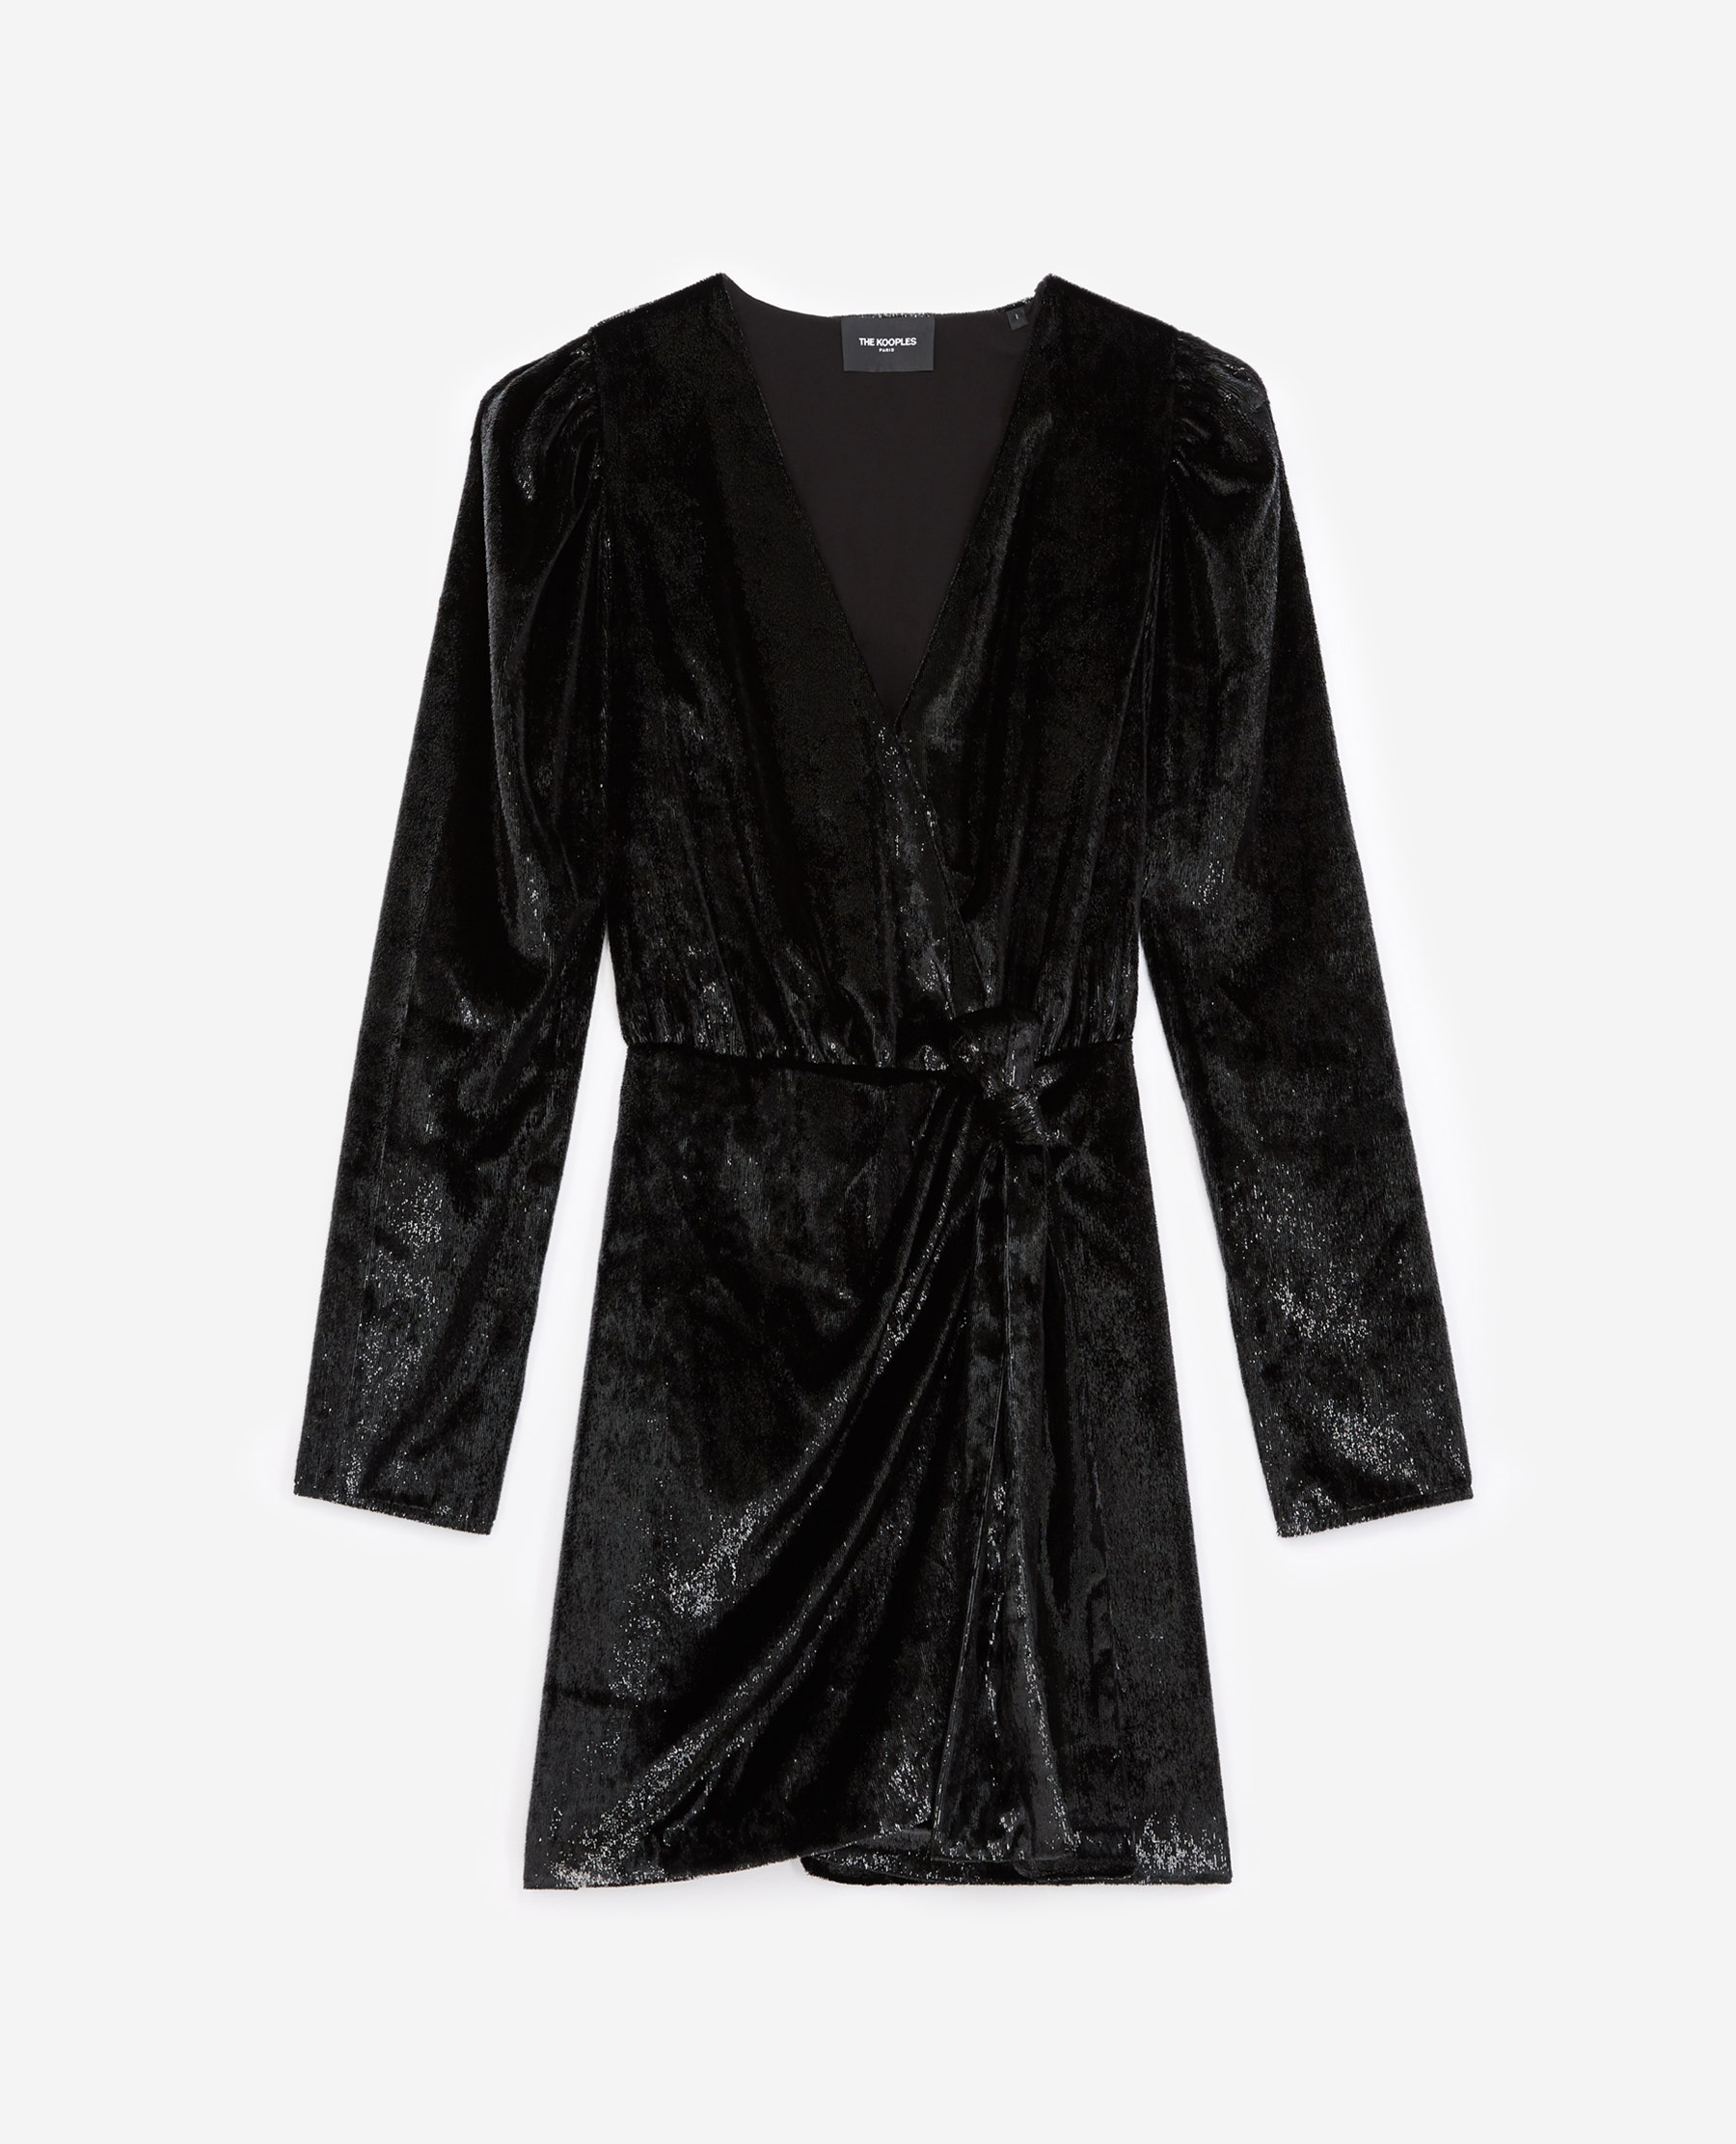 Robe portefeuille noire velours - The Kooples - Modalova